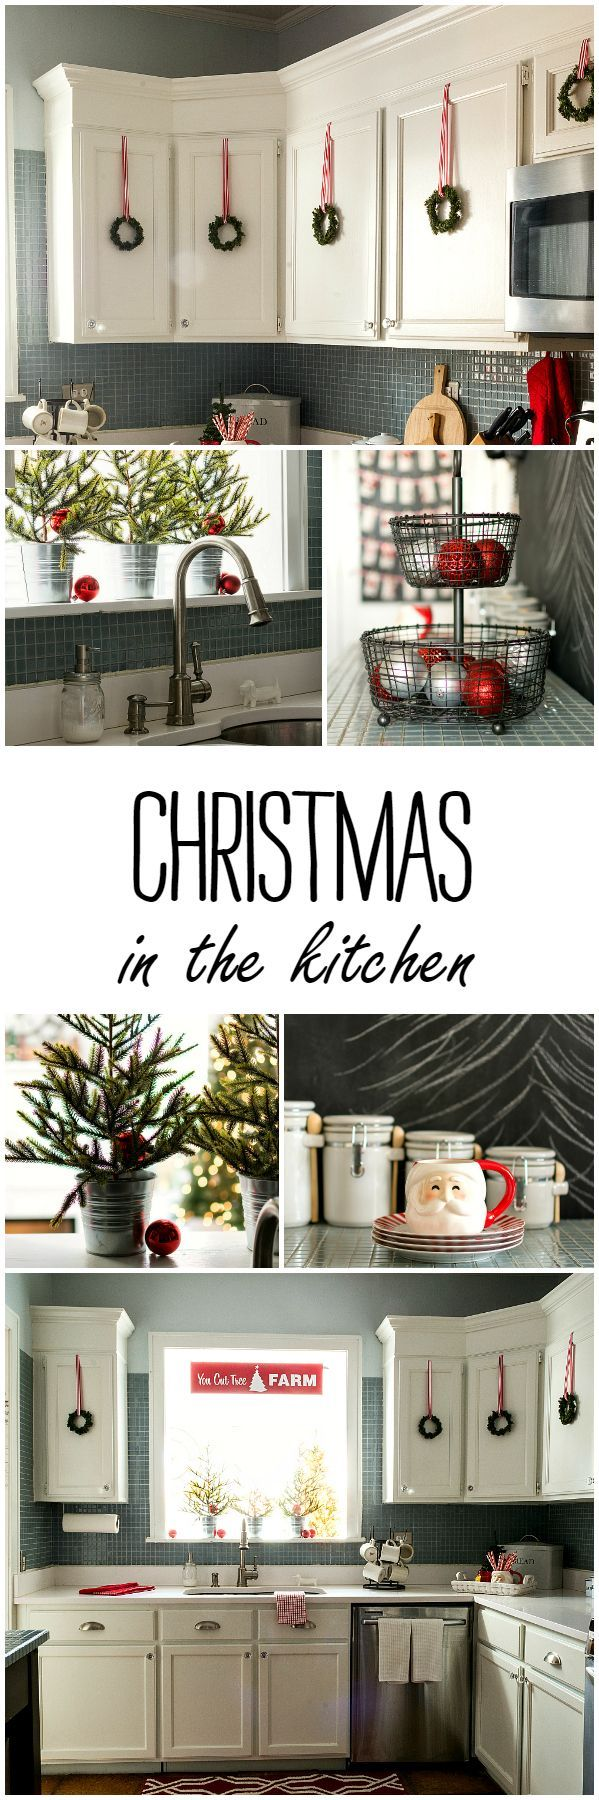 Holiday decorations - Christmas in the Kitchen.